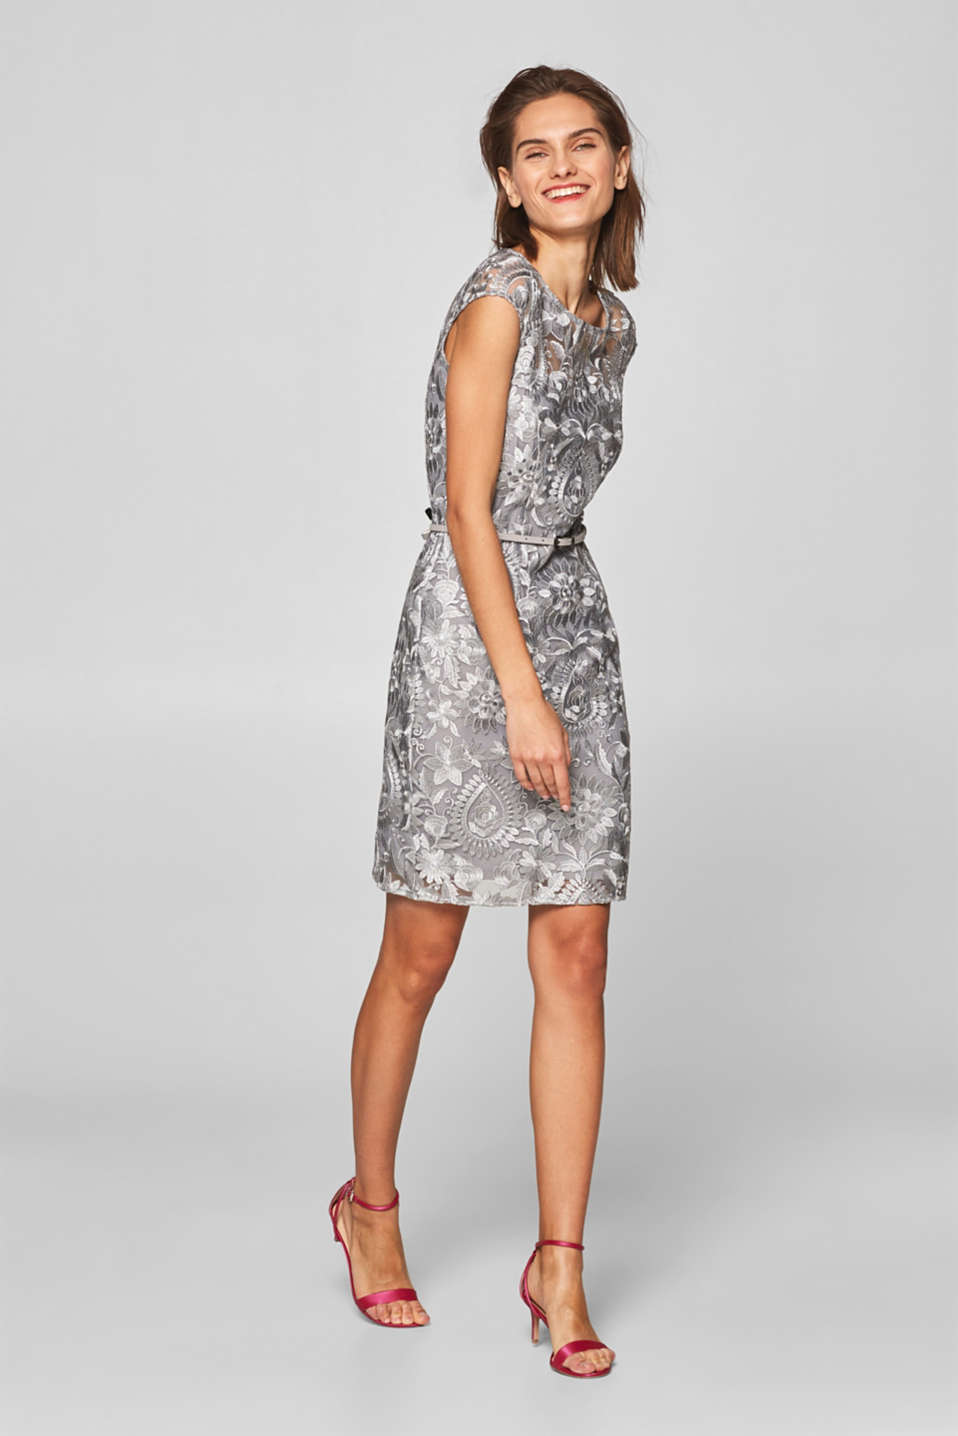 Esprit - Sheath dress with floral embroidery